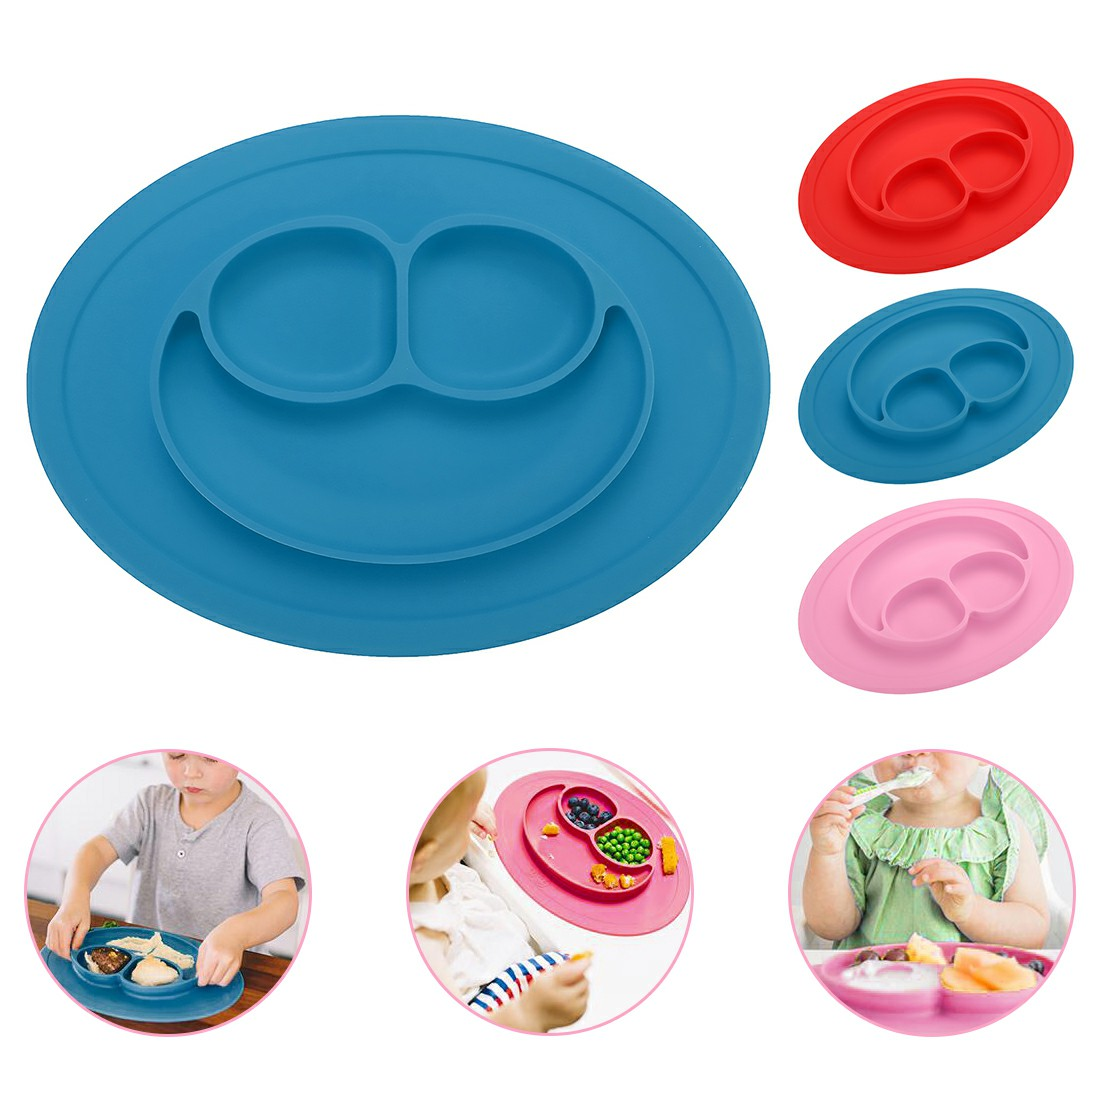 Baby Kids Child Suction Table Food Plate Cute Bowl Silicone Mat - Blue